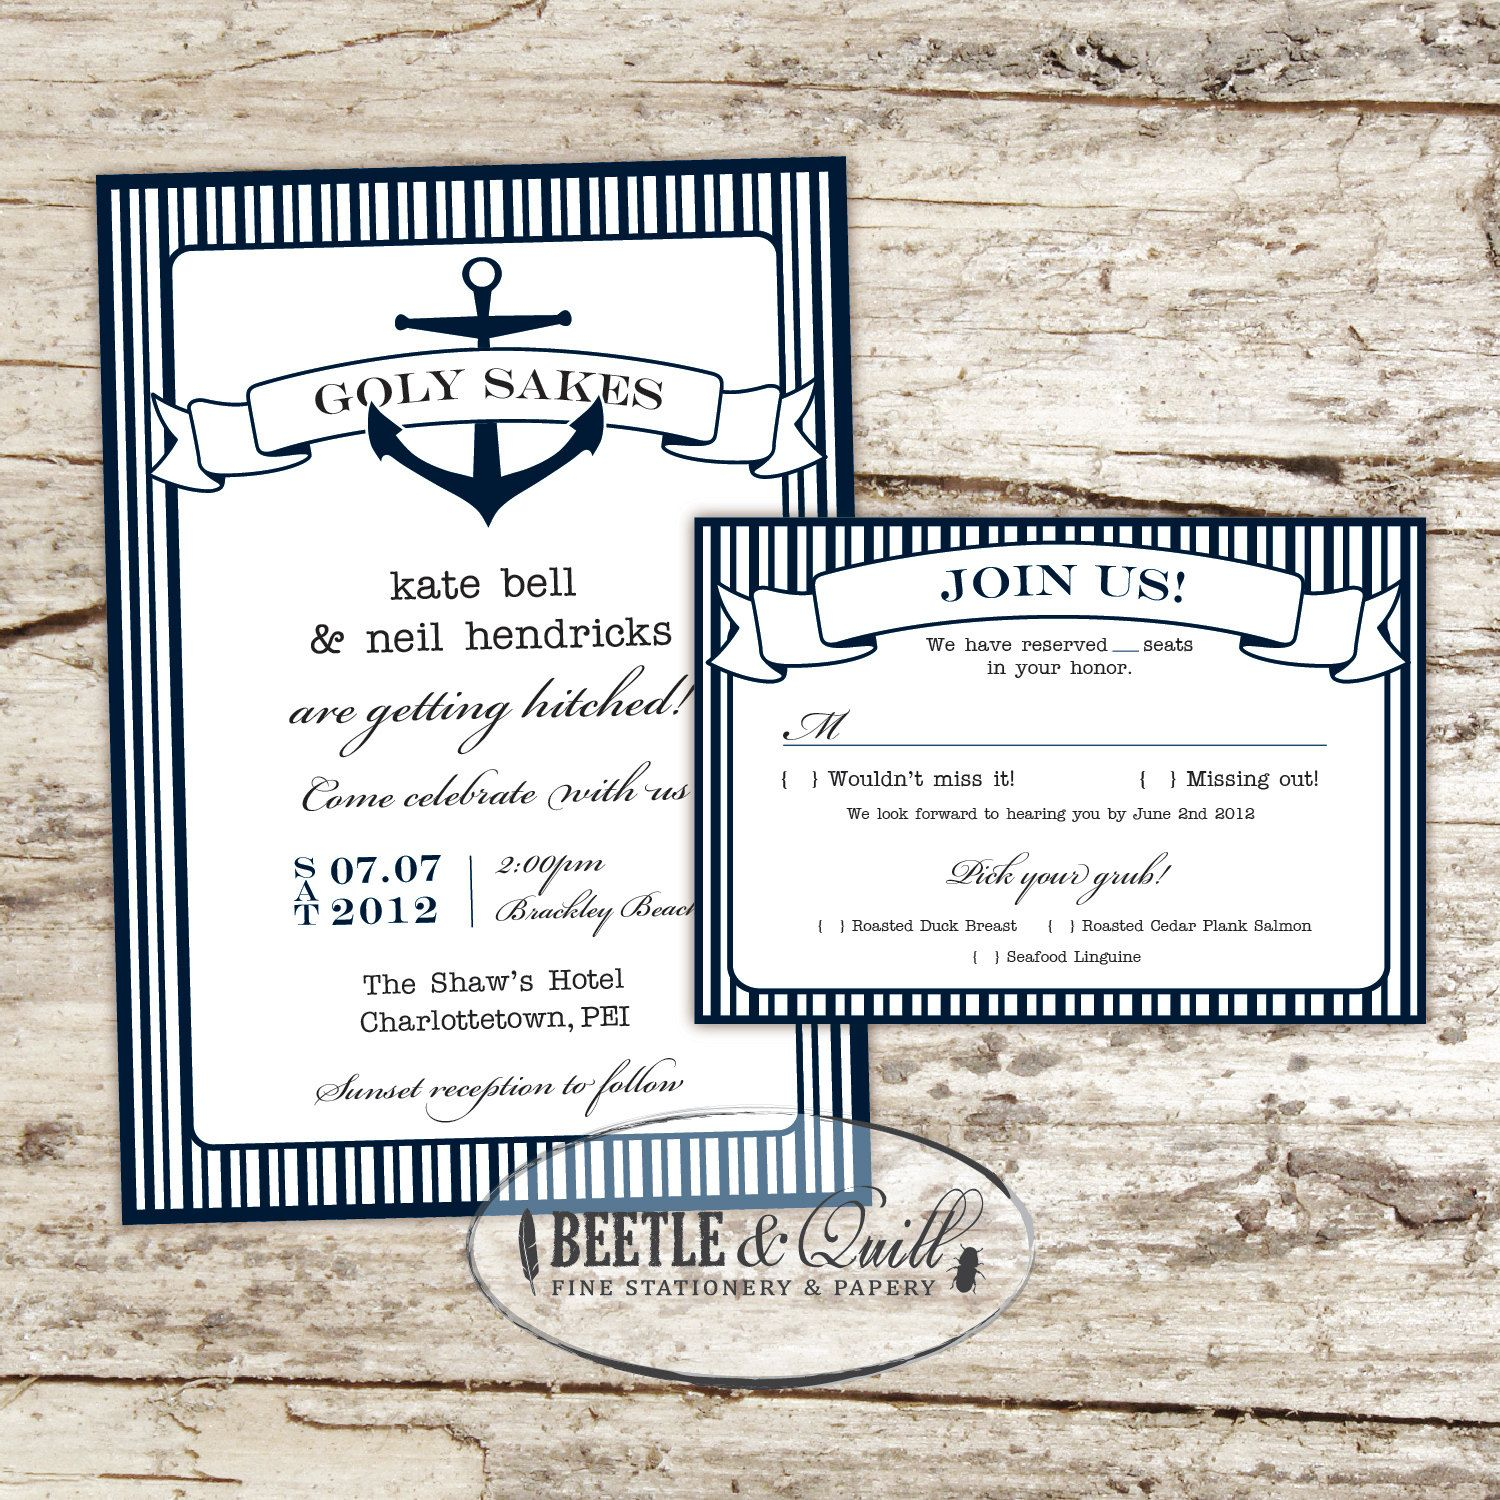 Printing Your Own Wedding Invitations: Print Your Own Invitations Anchors Away Printable Wedding